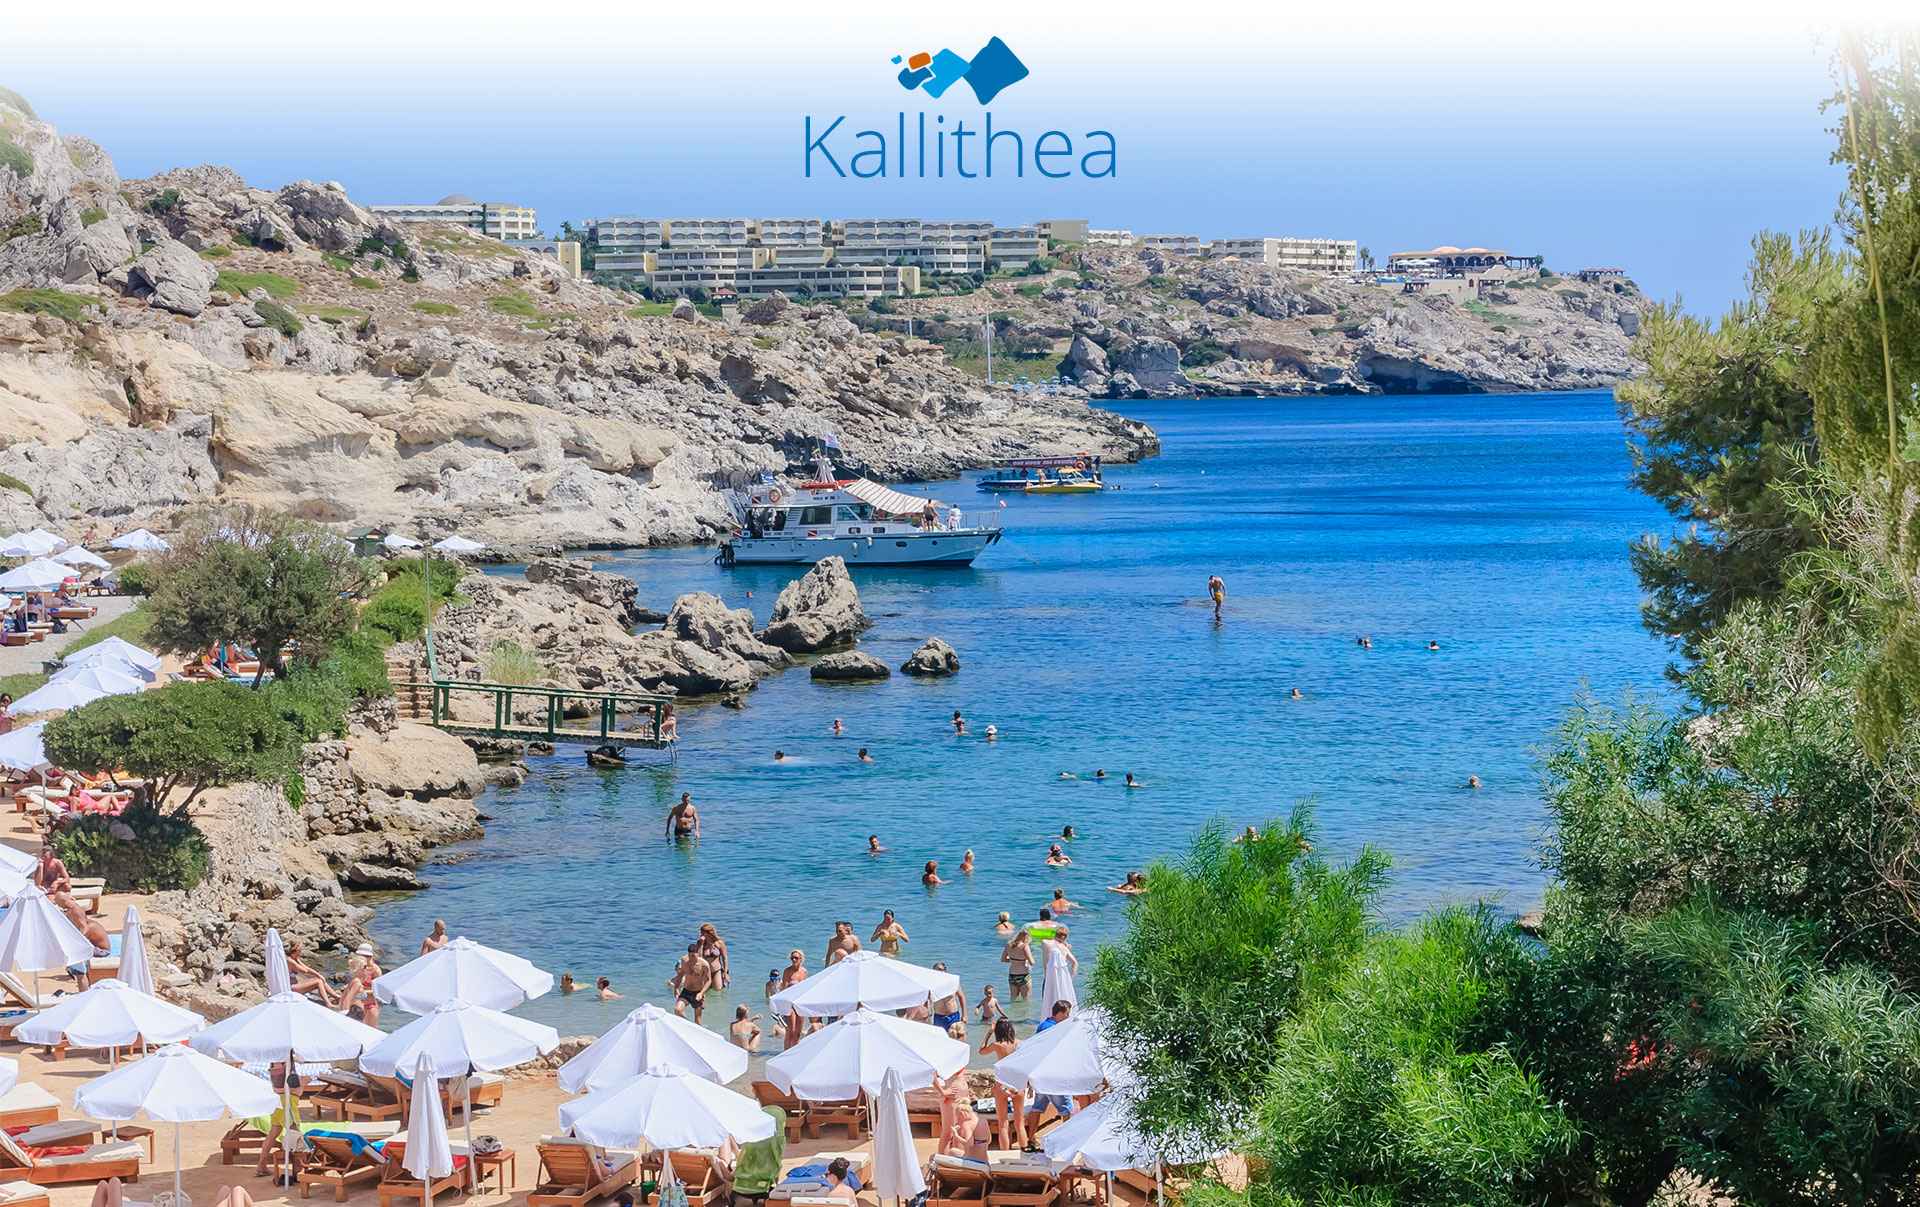 The beach of Kallithea is famous for its hot medicinal springs which were  built by the Italians but no longer function. It is found 8 km south of  Rhodes